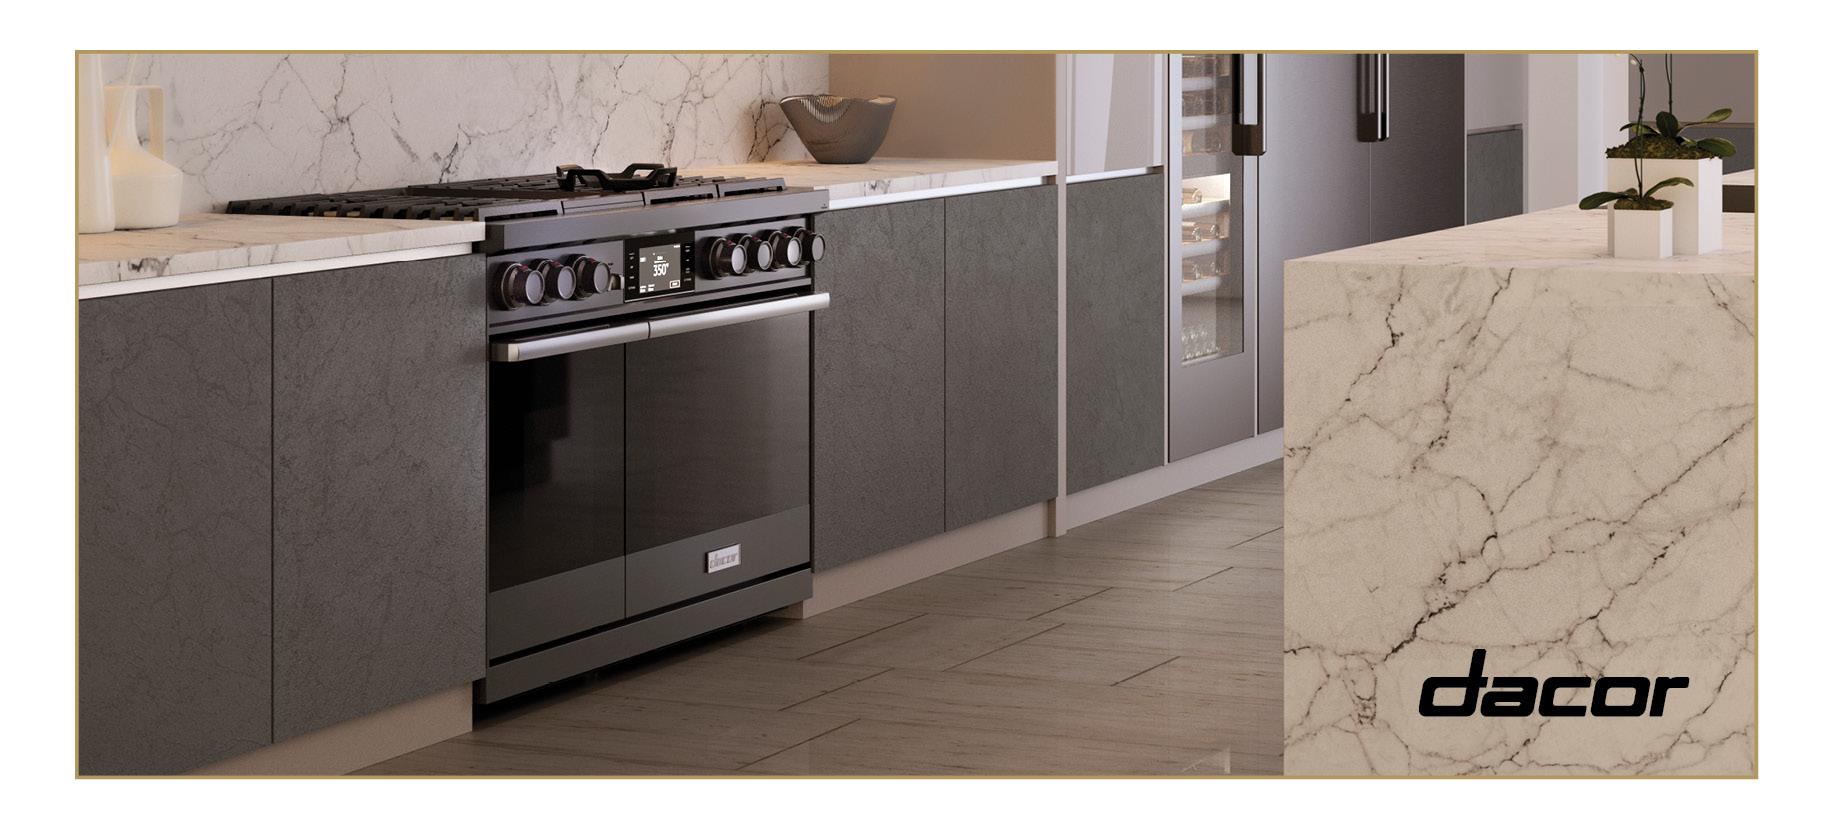 Dacor Dual Fuel Steam Contemporary Range in black with silver accents. Wine refrigerator. Marble island.